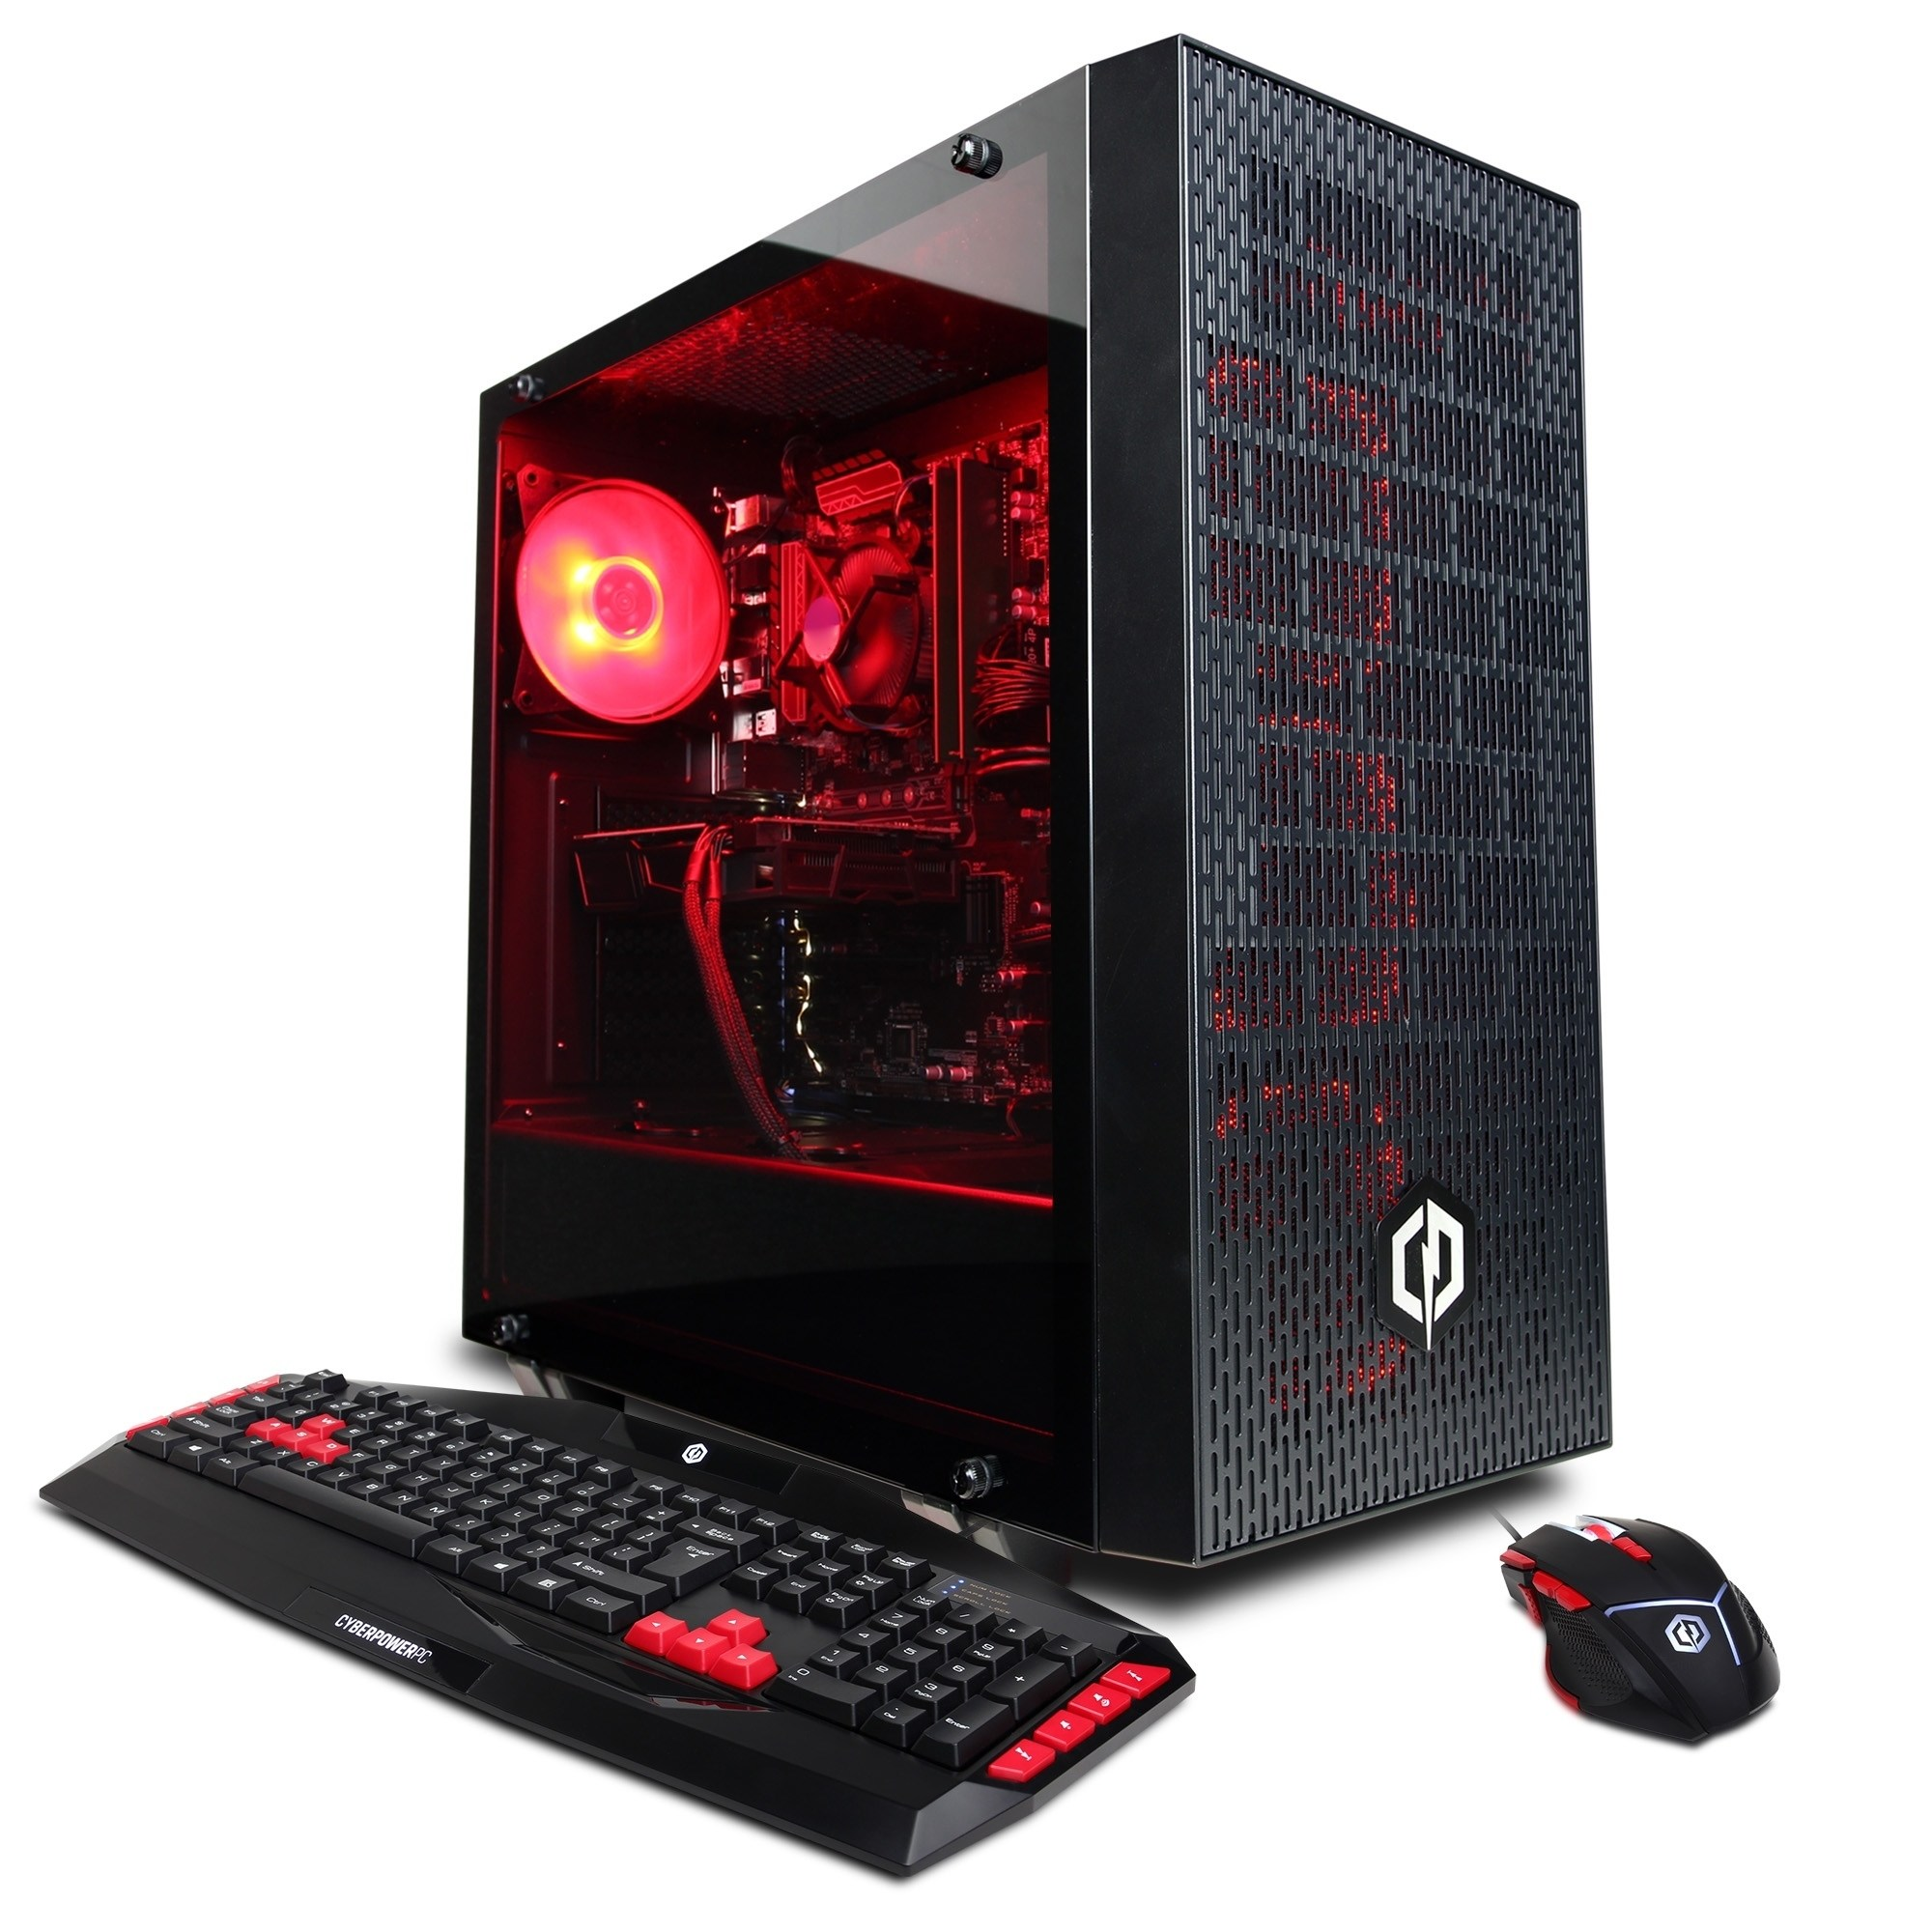 CYBERPOWERPC Gamer Xtreme GXi10940CPG w/ Intel i7-8700 Processor, Nvidia GeForce GTX 1060 3GB, 8GB Memory, 1TB Hard Drive and Windows 10 Home 64-Bit Gaming PC